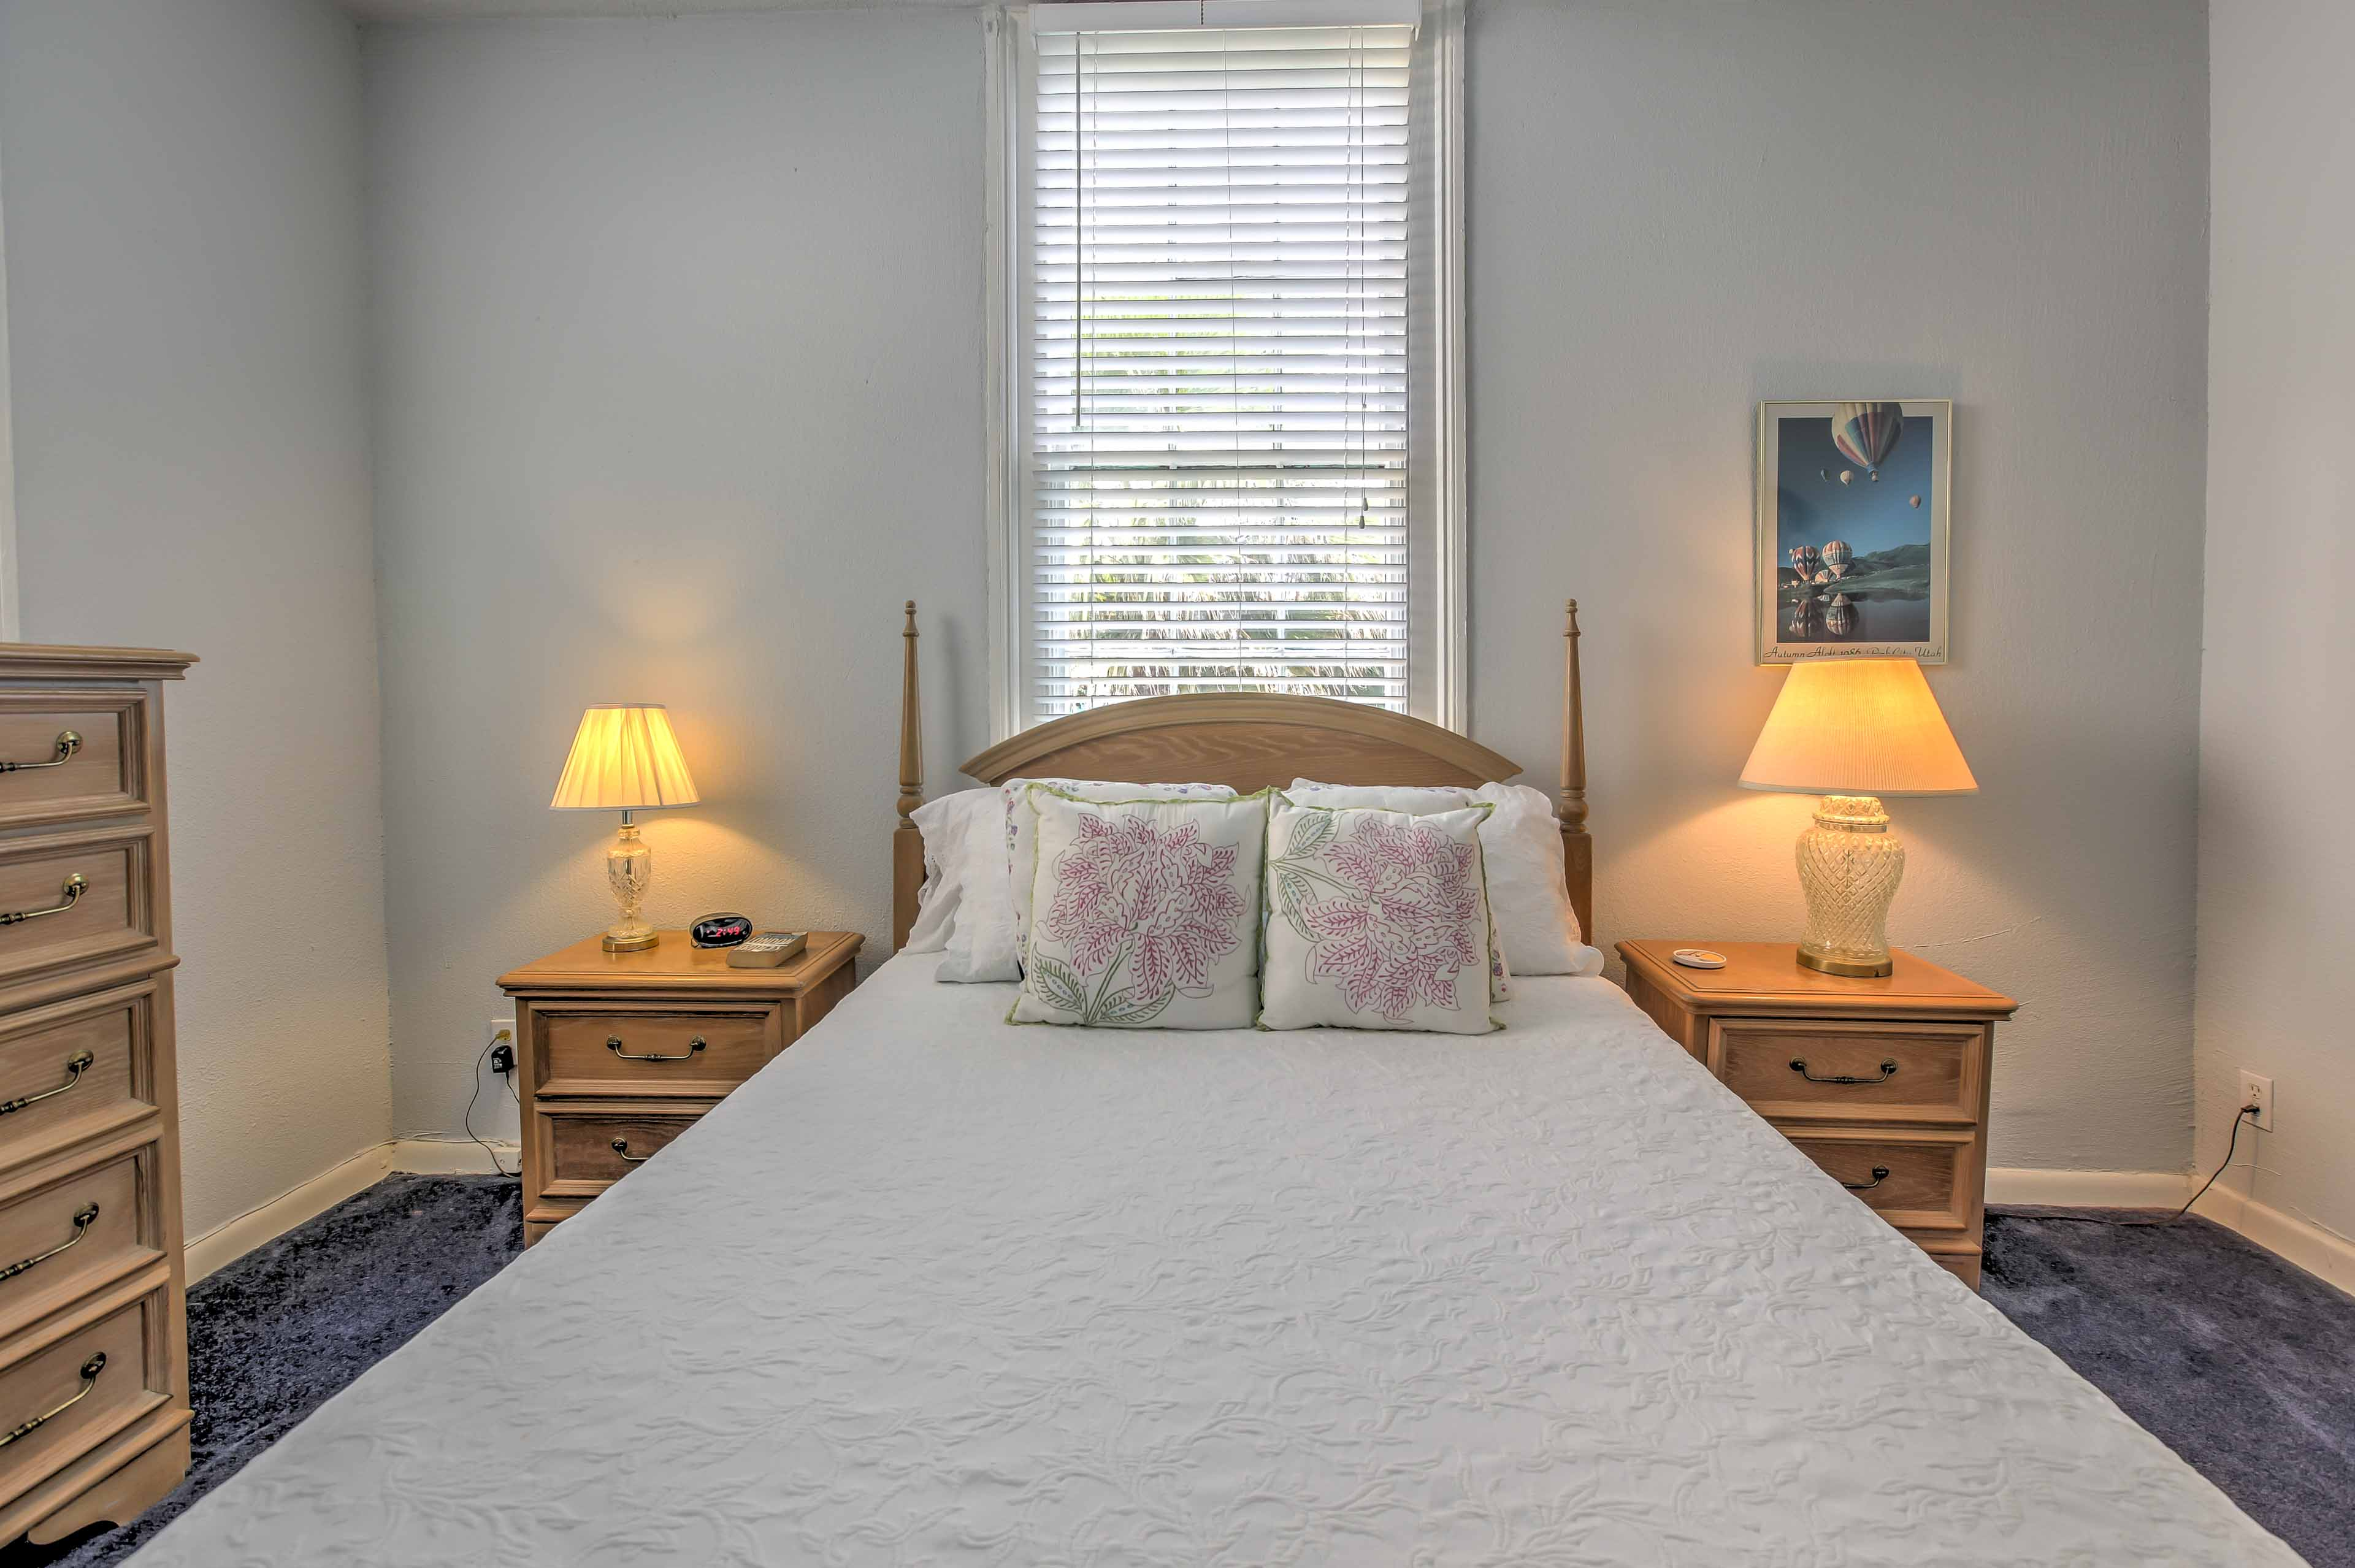 The well-furnished master bedroom features a comfortable queen-sized bed.